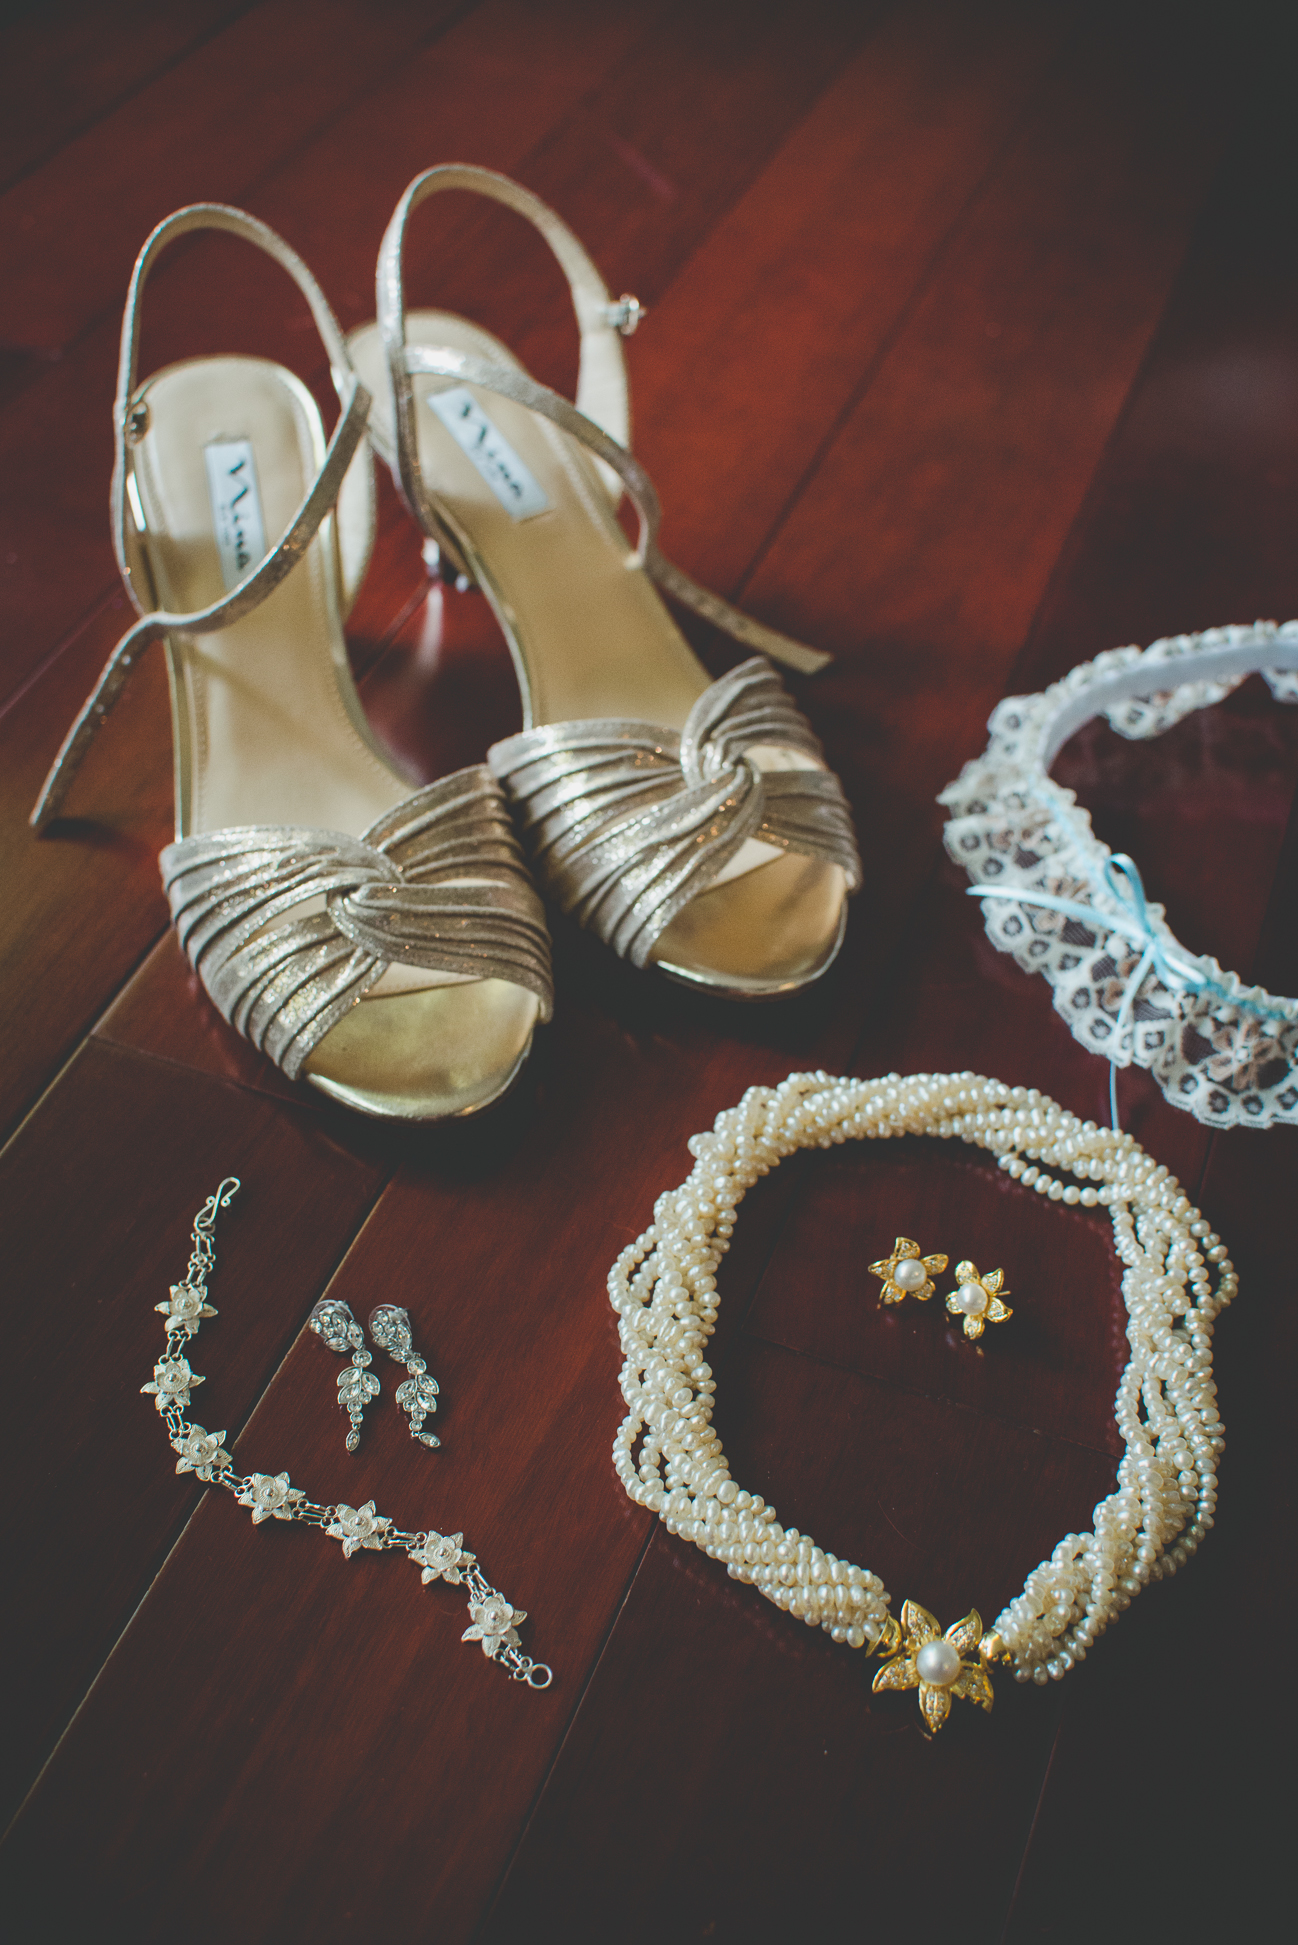 bride's golden wedding shoes, silver flower bracelet and filigree earrings, pearl necklace with golden flower and matching golden flower earrings, and white lace garter with blue ribbon